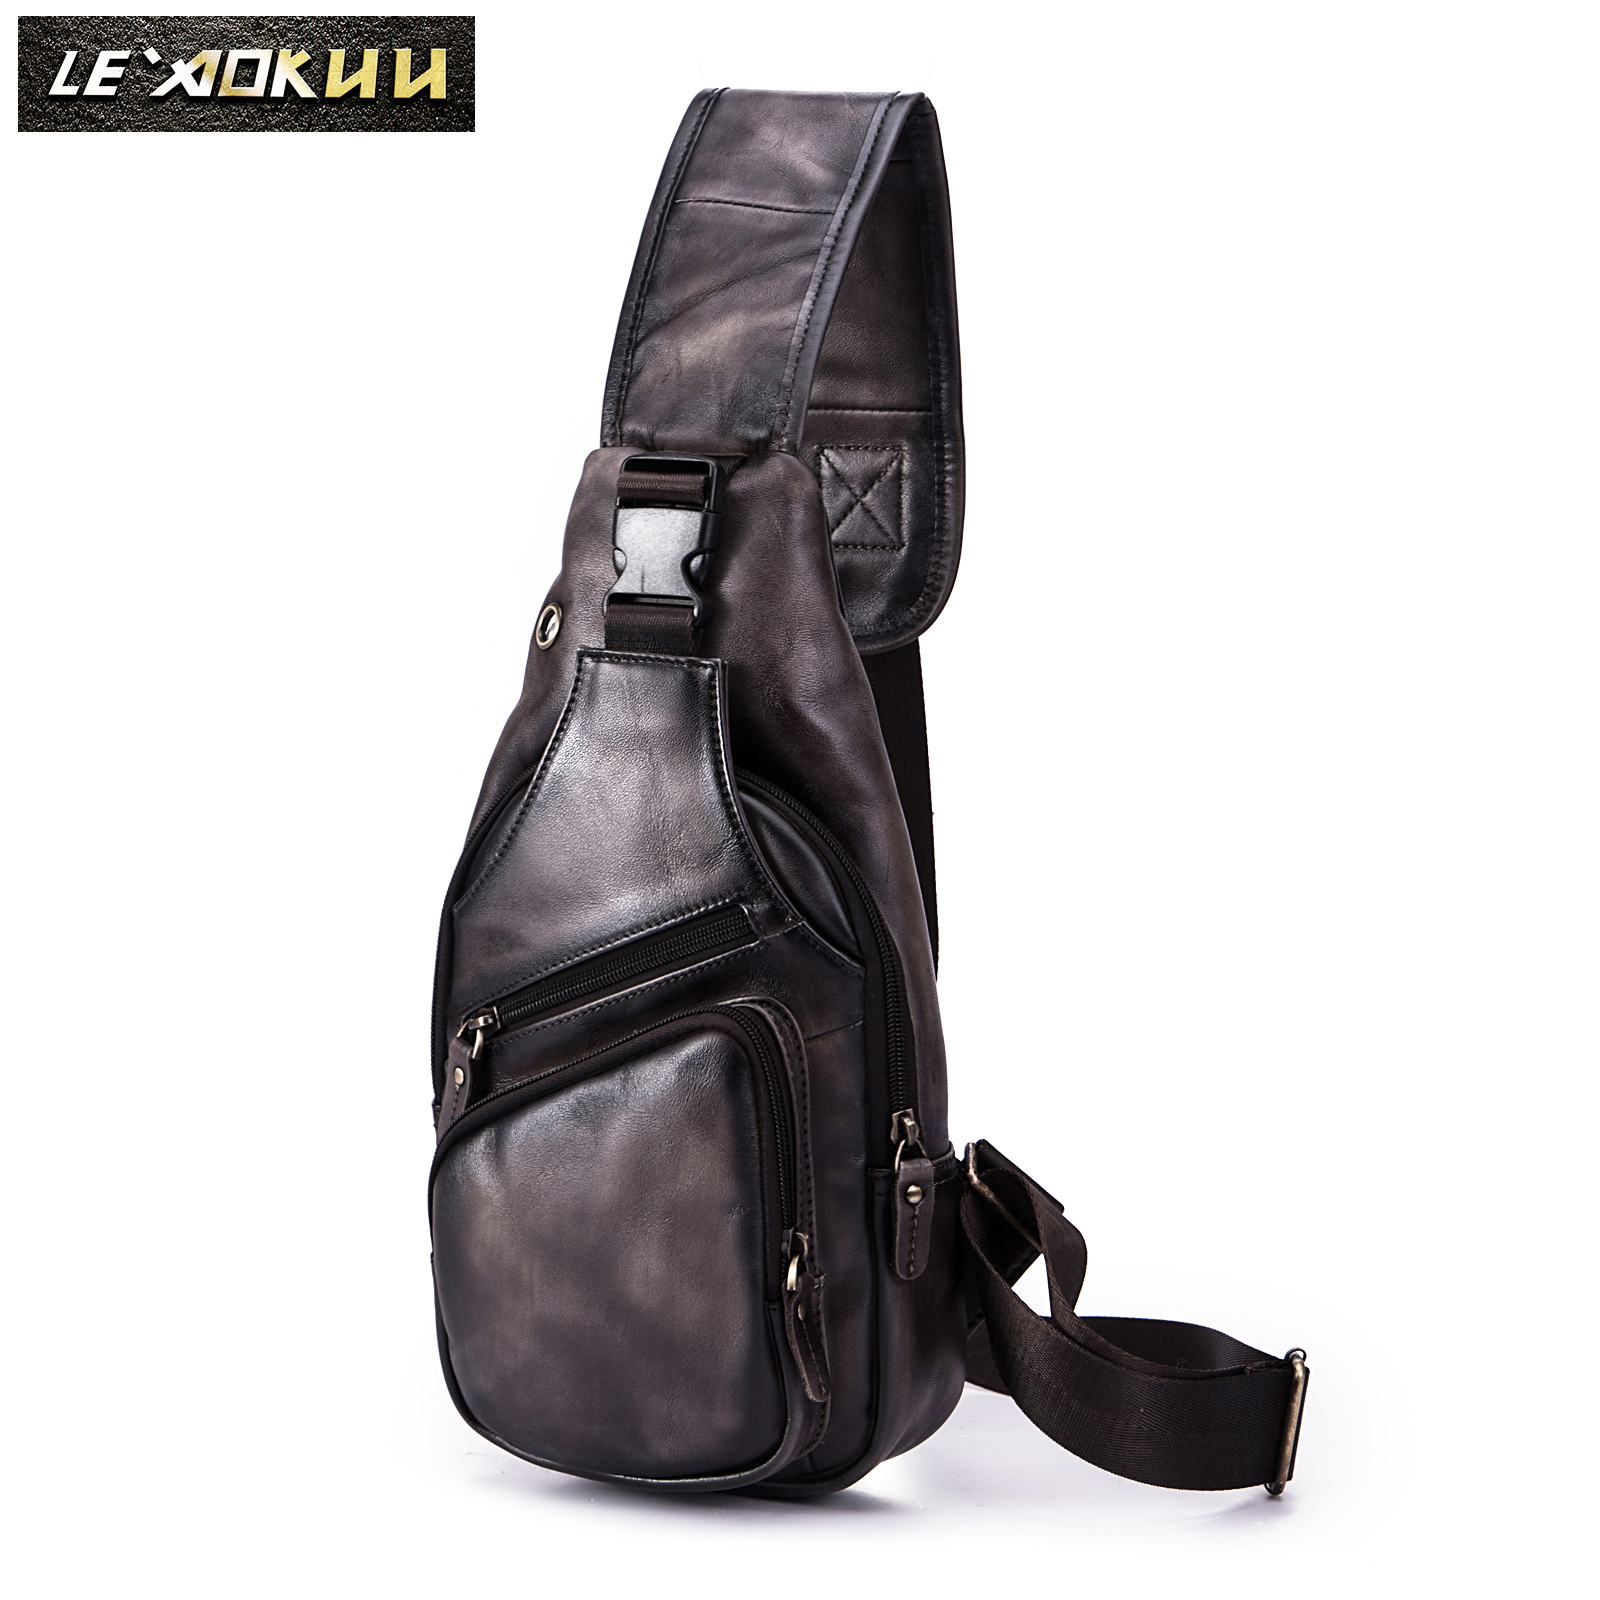 Men Original Crazy Horse Leather Casual Fashion Crossbody Chest Sling Bag Design Travel One Shoulder Bag Daypack Male 8015-dc